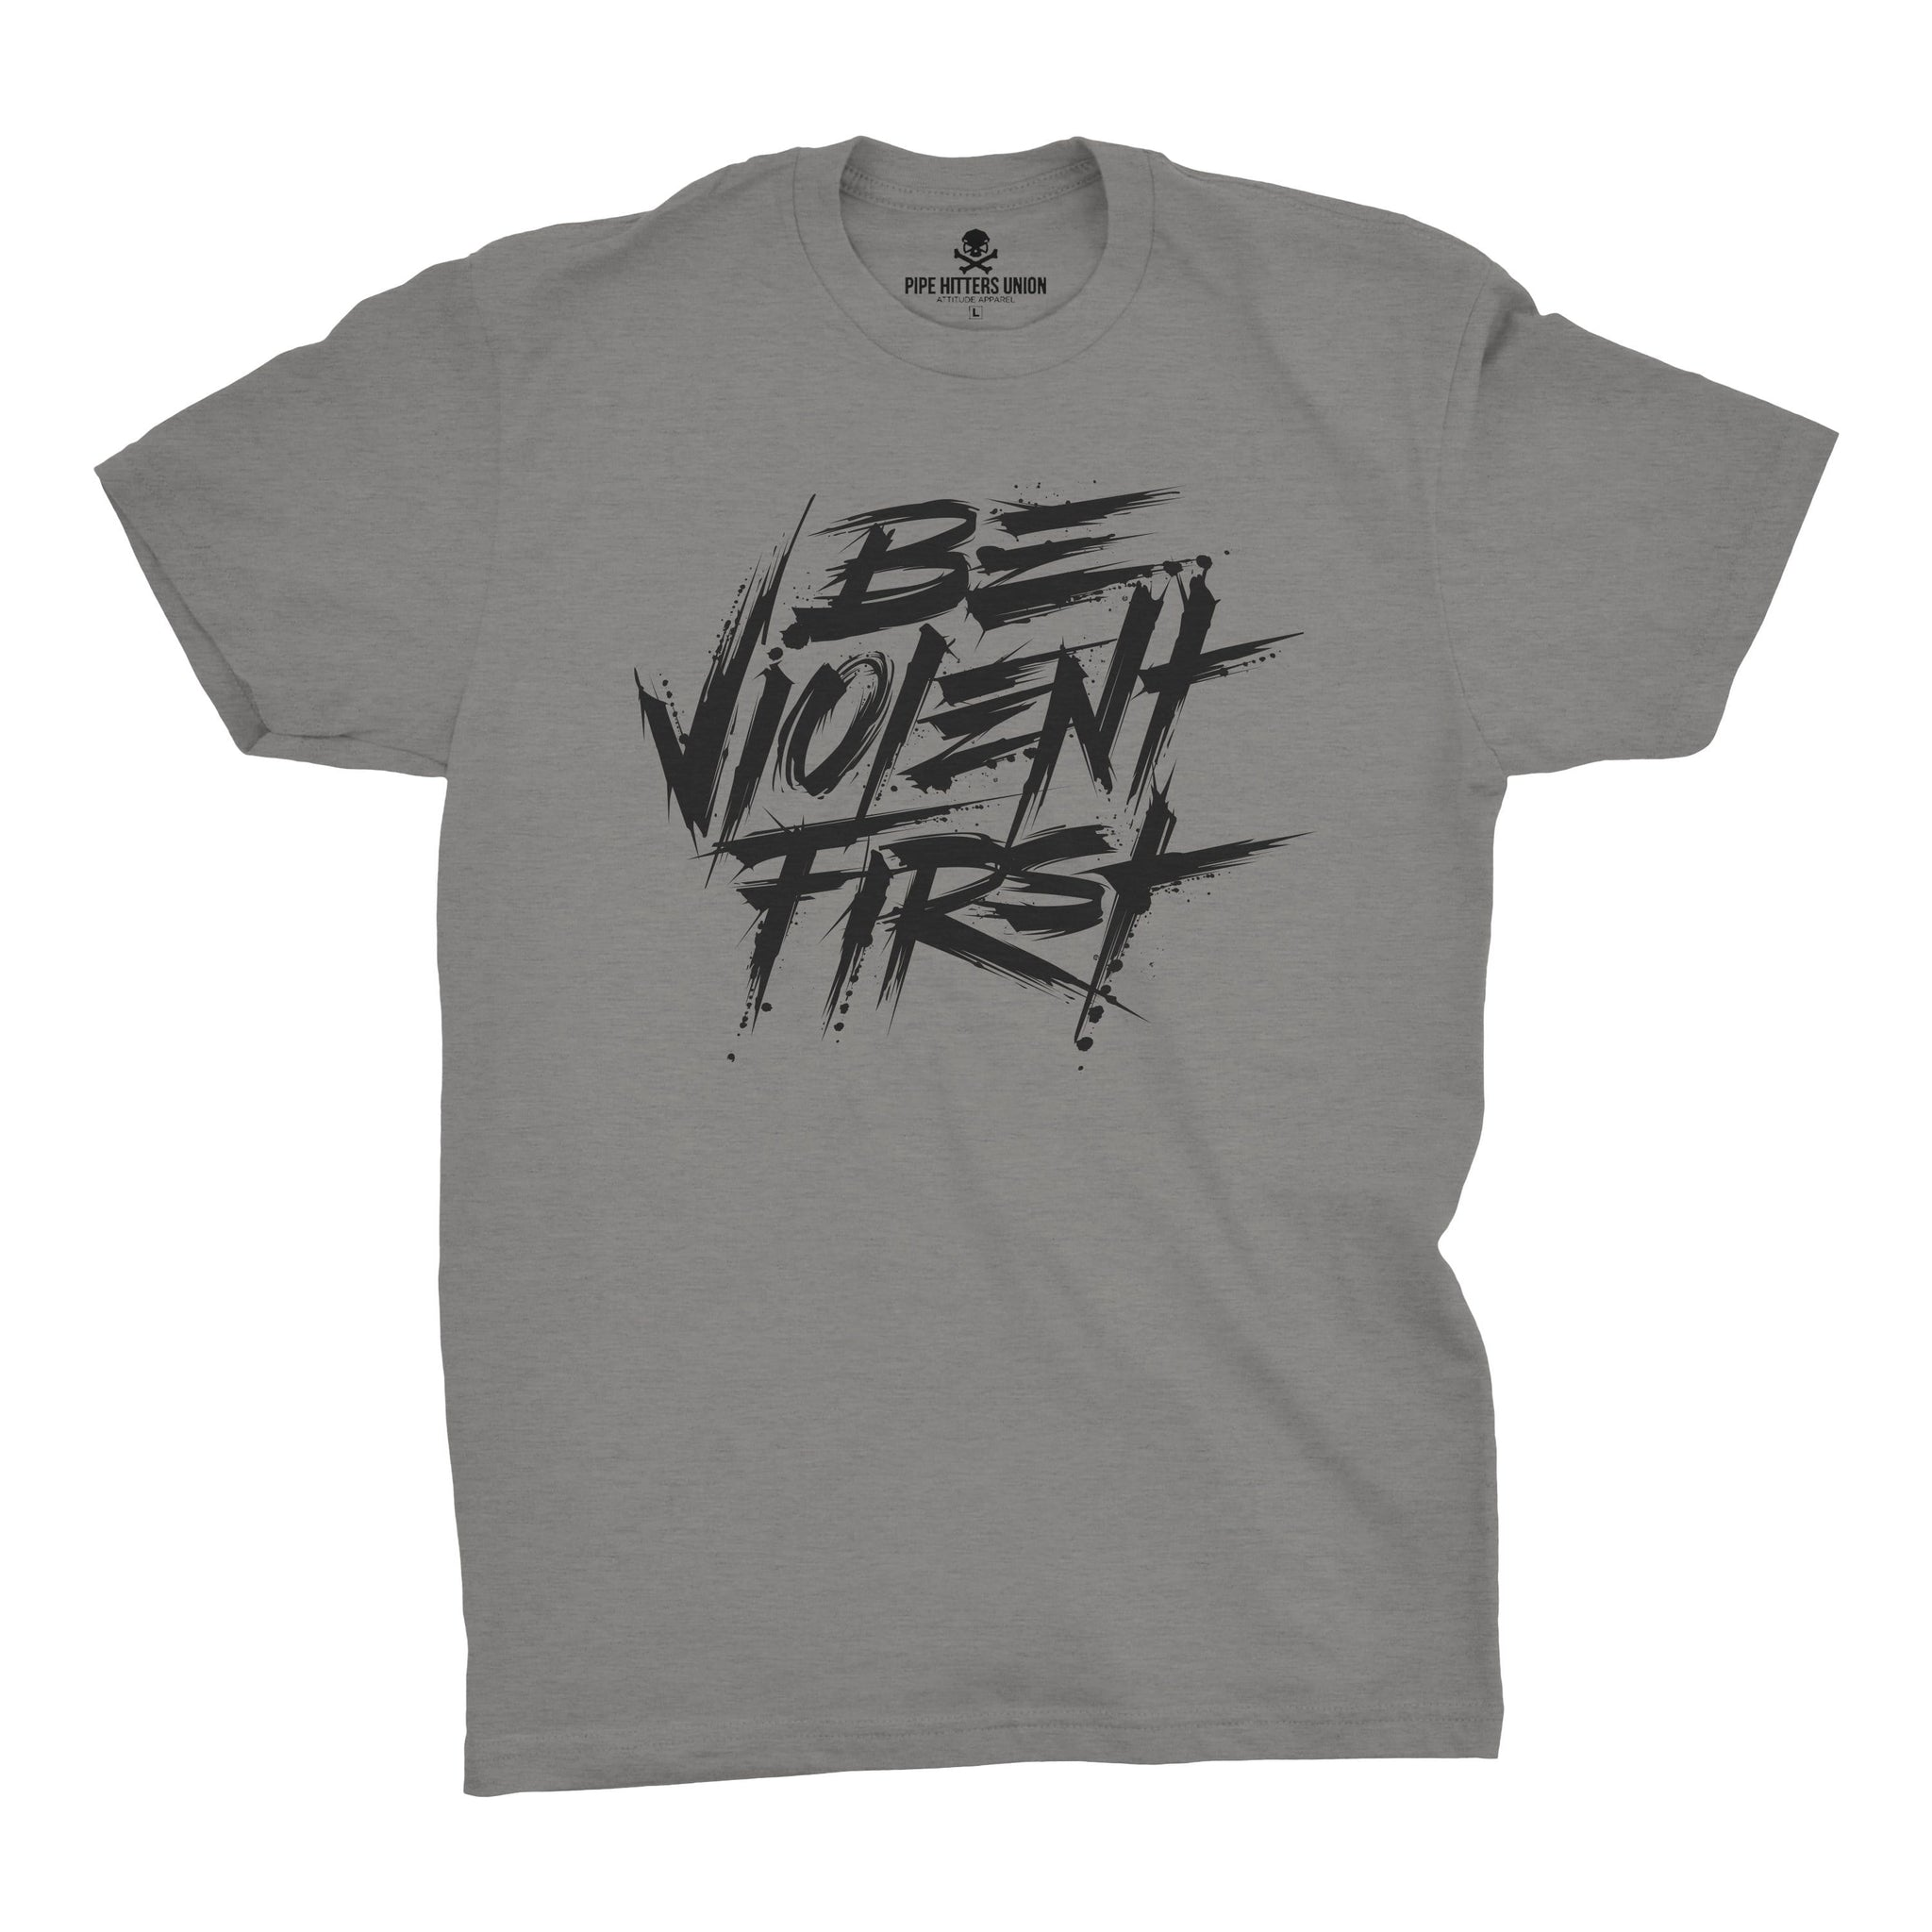 Be Violent First - Grey/Black - T-Shirts - Pipe Hitters Union